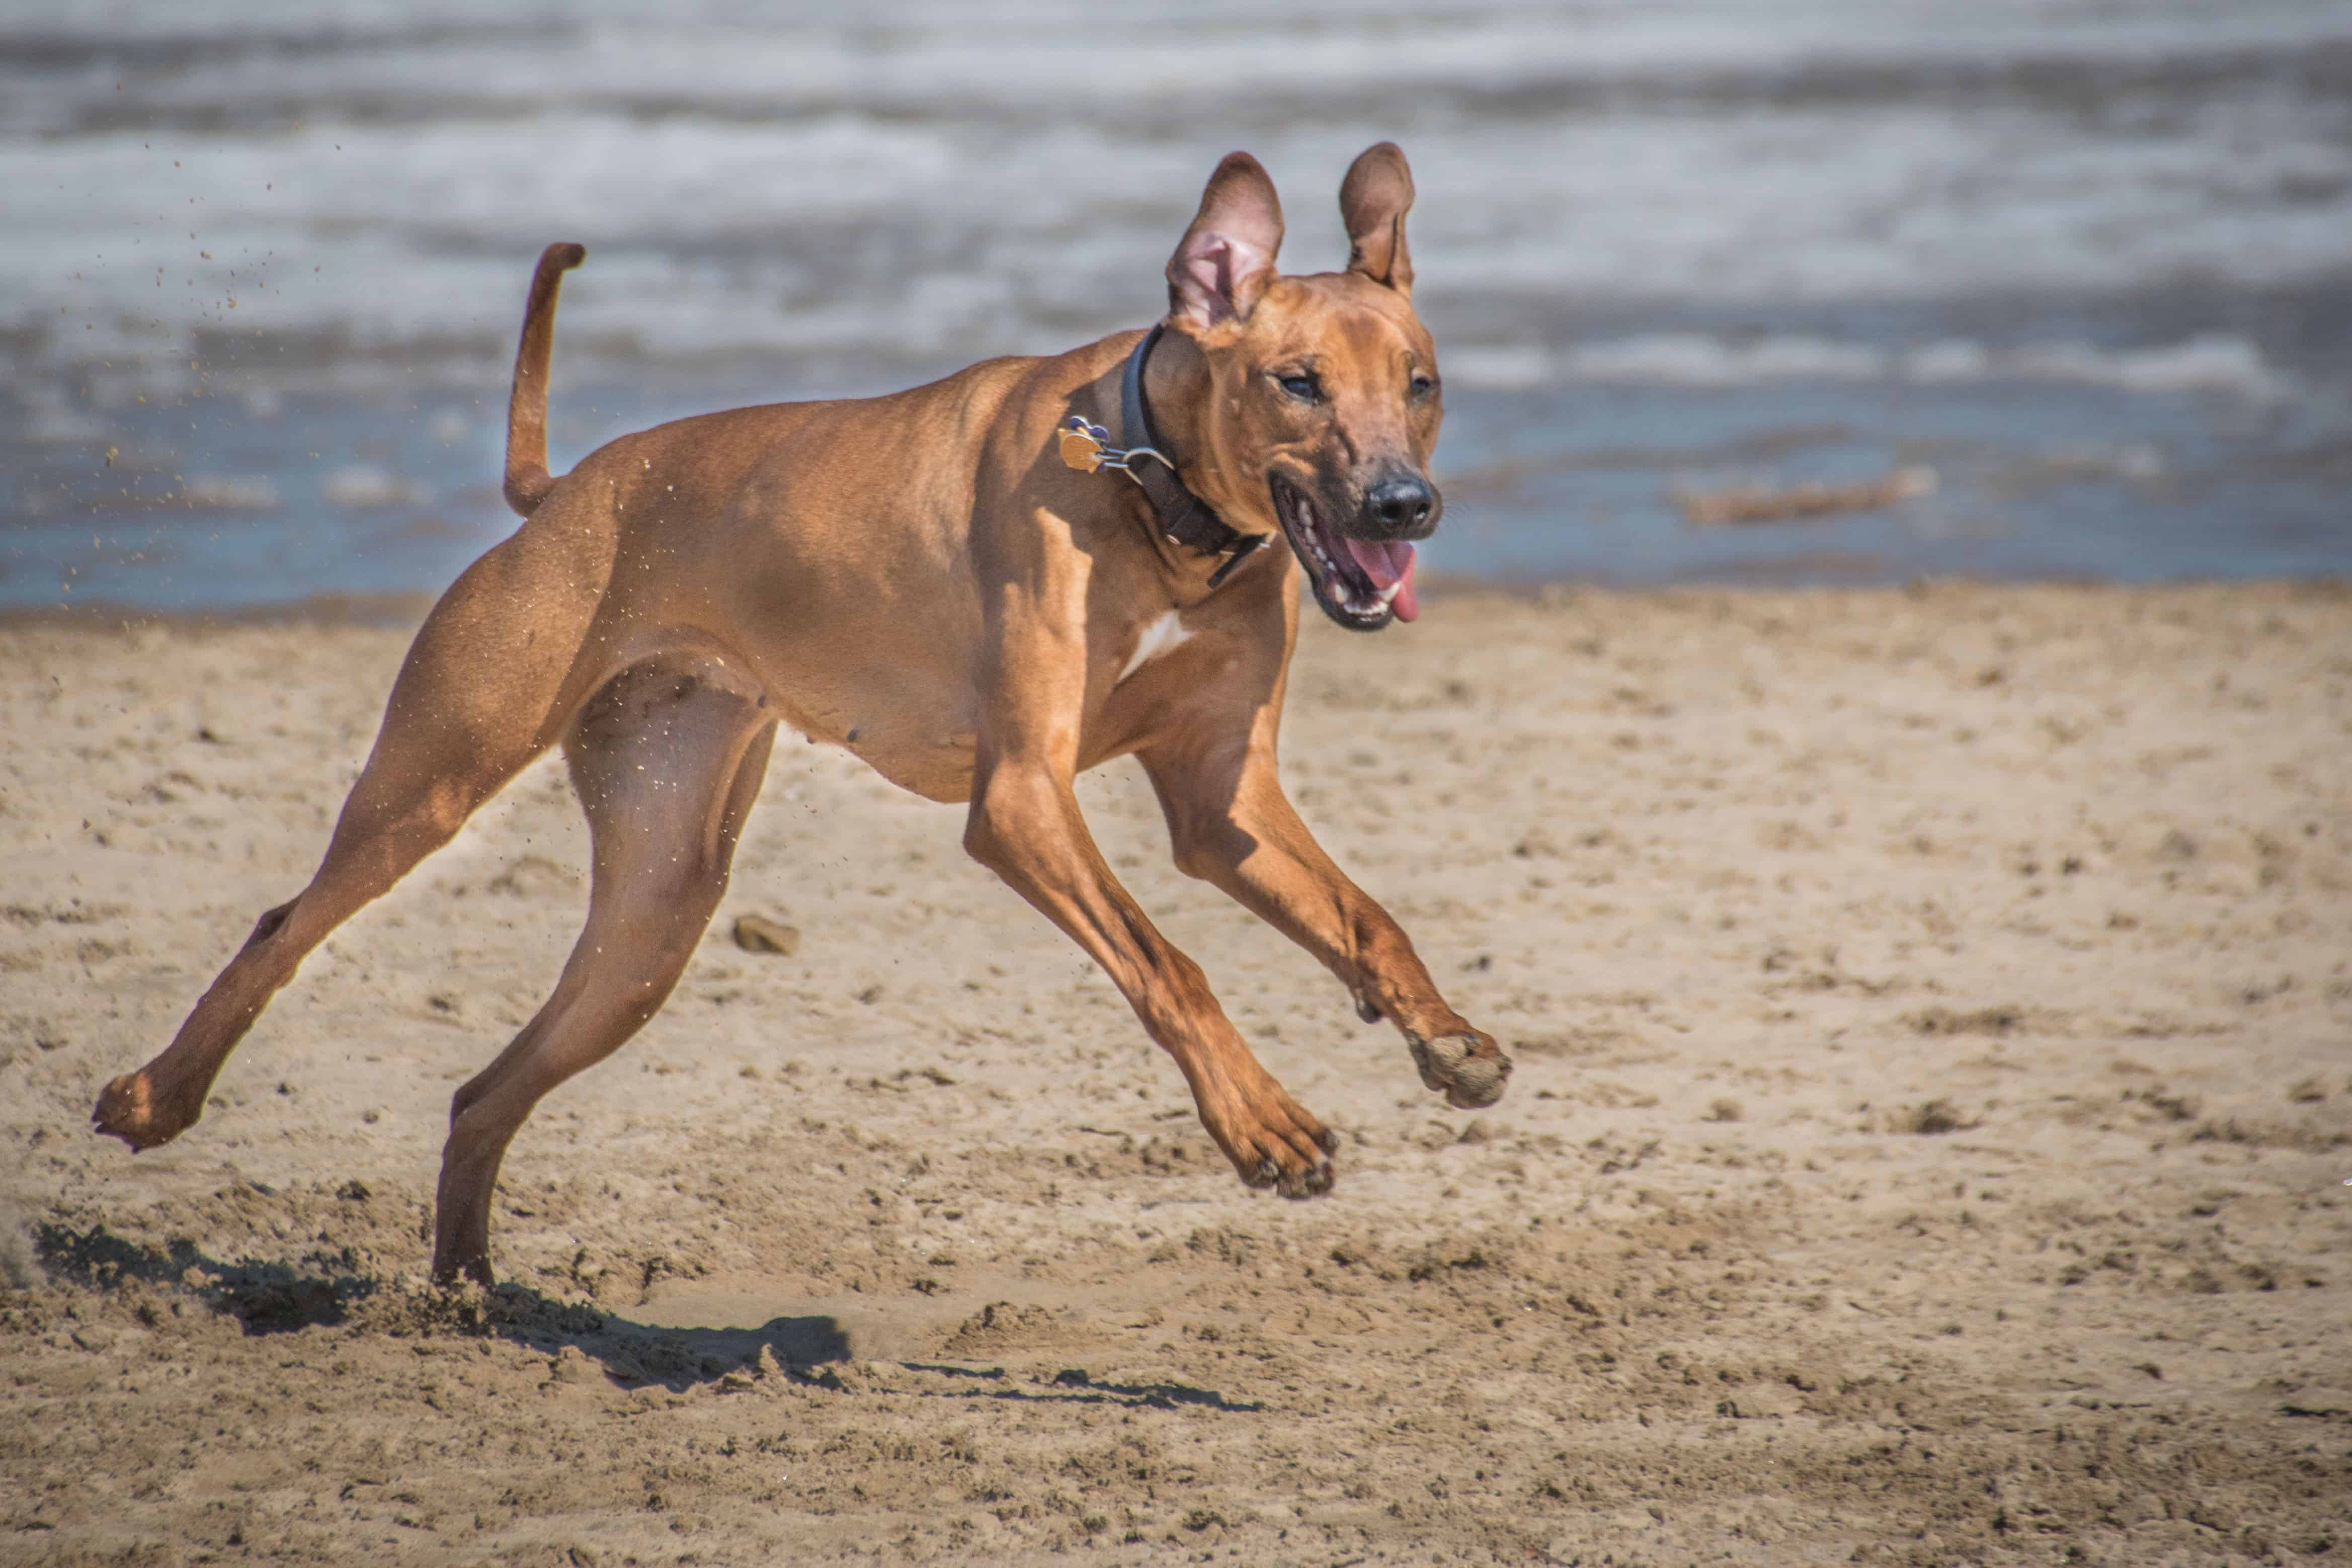 Rhodesian Ridgeback, puppy, montrose beach, chicago, adventure,  marking our territory